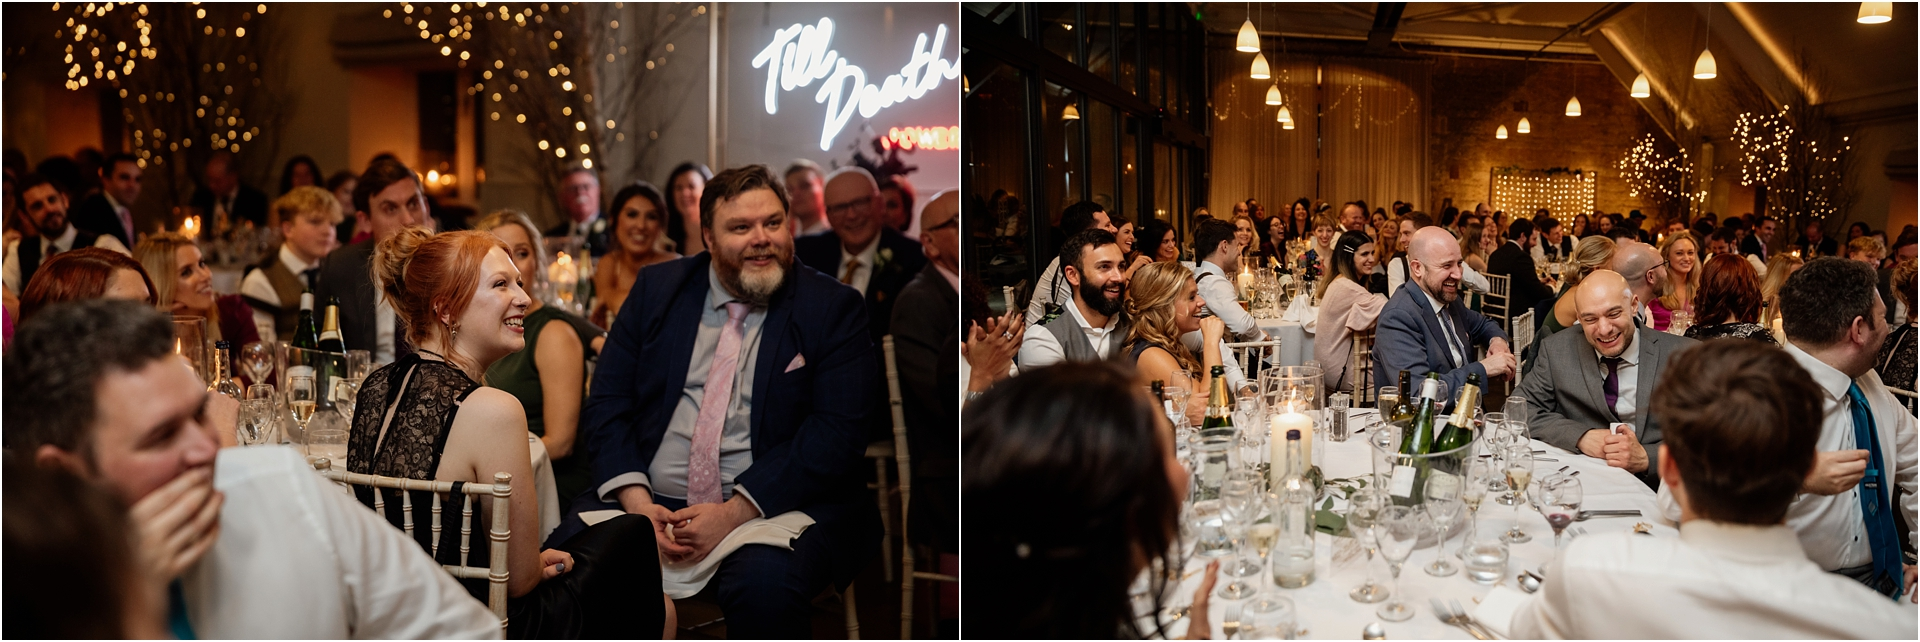 guests reactions winter wedding Lapstone Barn